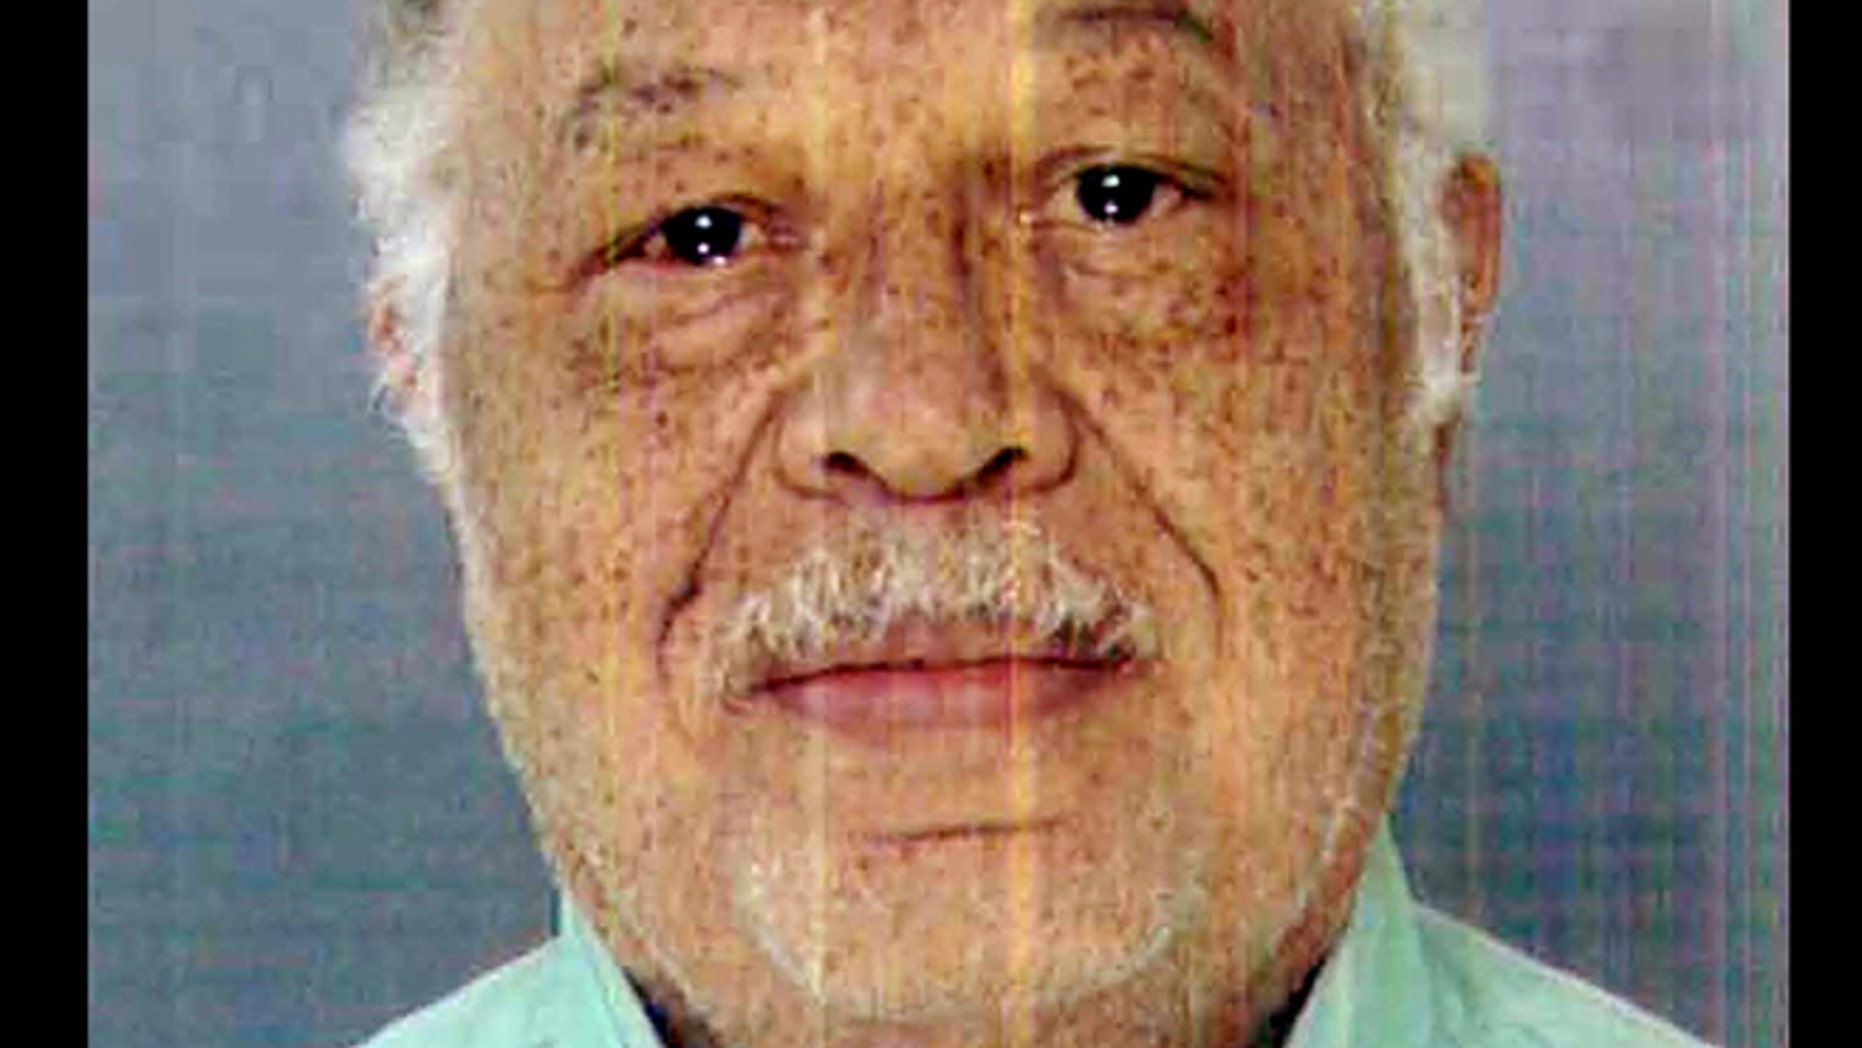 Three murder charges against Philly abortion doctor Dr. Kermit Gosnell were tossed